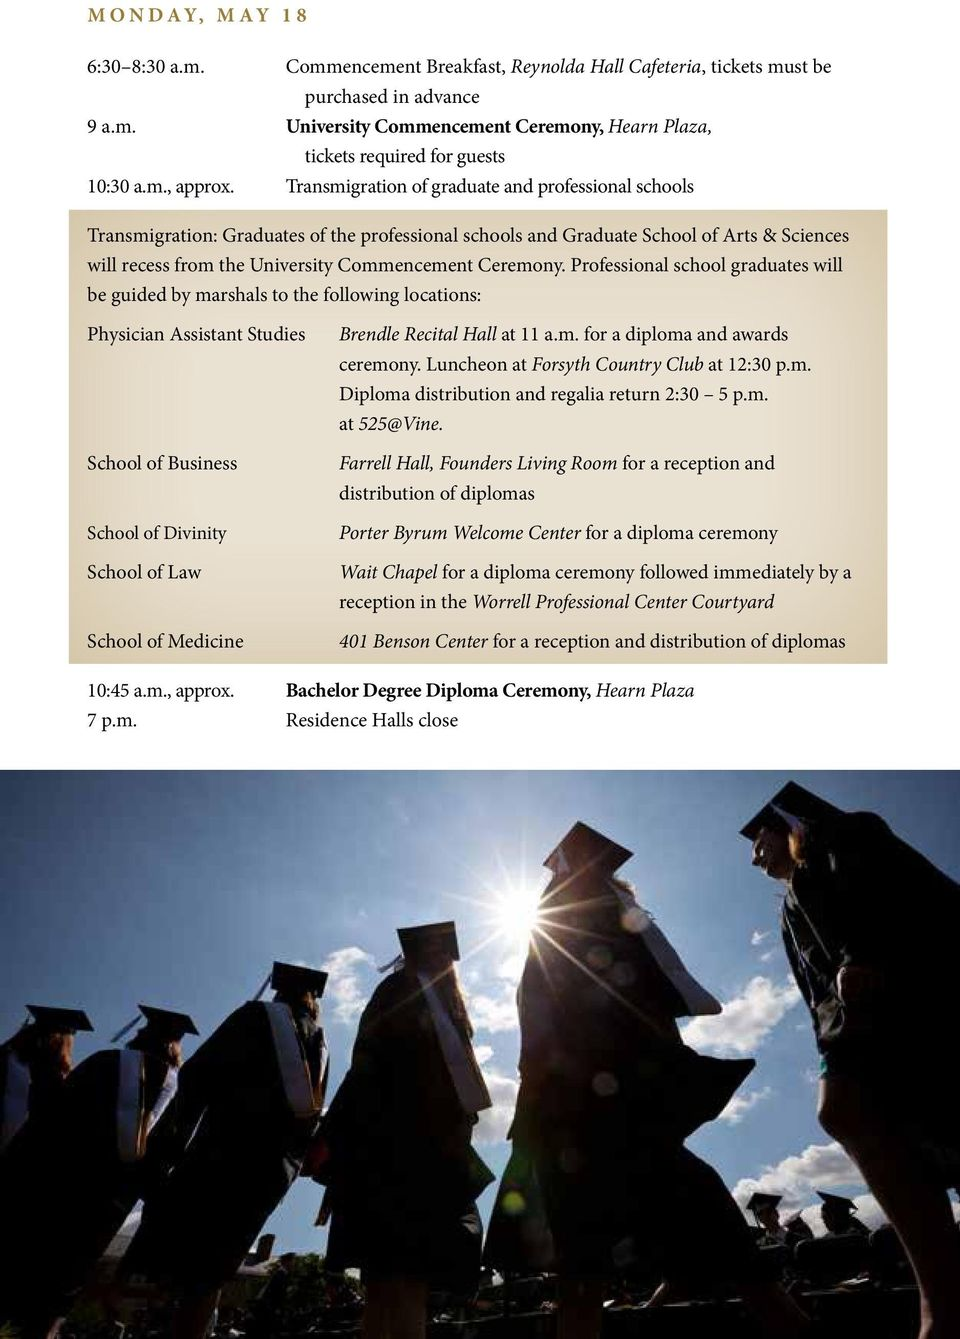 Transmigration of graduate and professional schools Transmigration: Graduates of the professional schools and Graduate School of Arts & Sciences will recess from the University Commencement Ceremony.